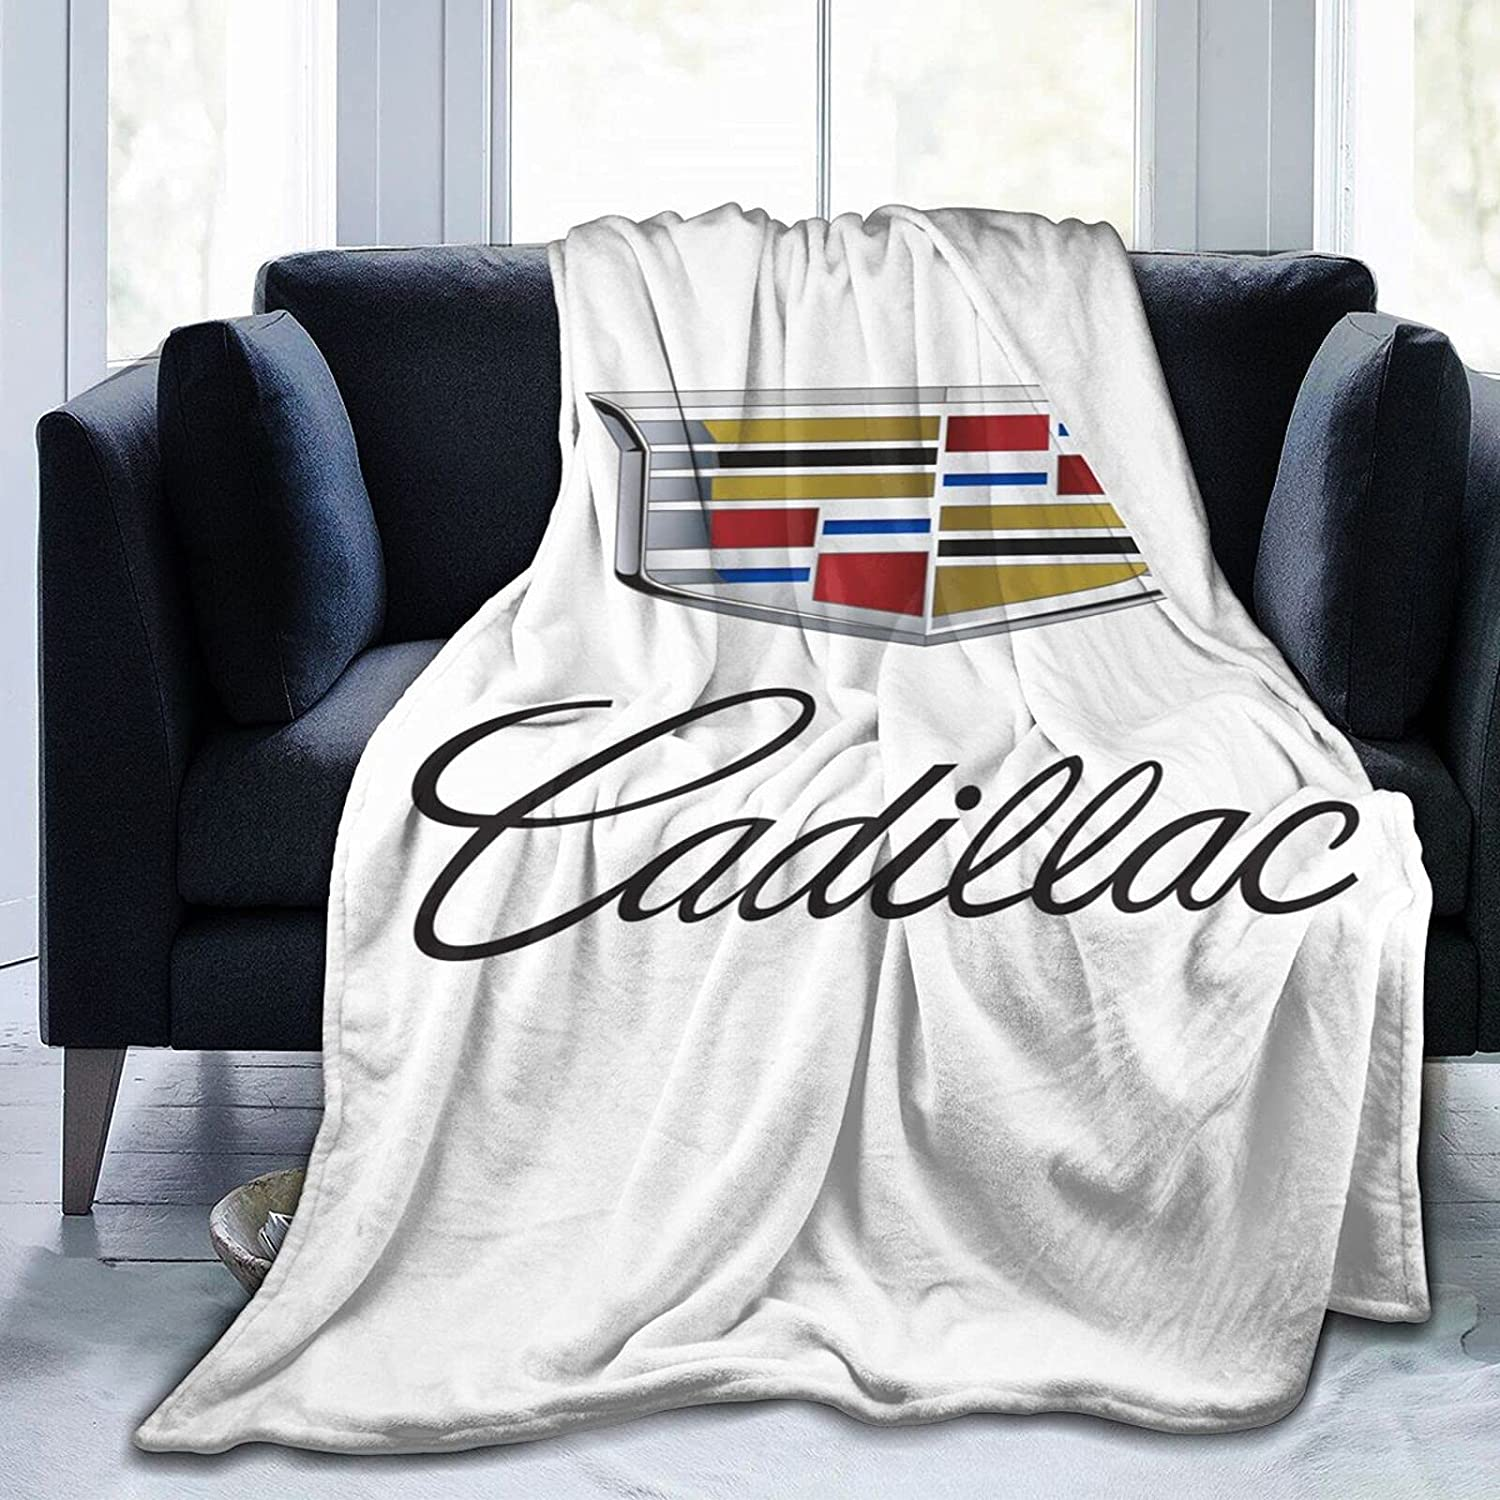 Cadillac Soft and Warm Throw Blanket supreme Max 81% OFF Couch Room Plush Living Bed